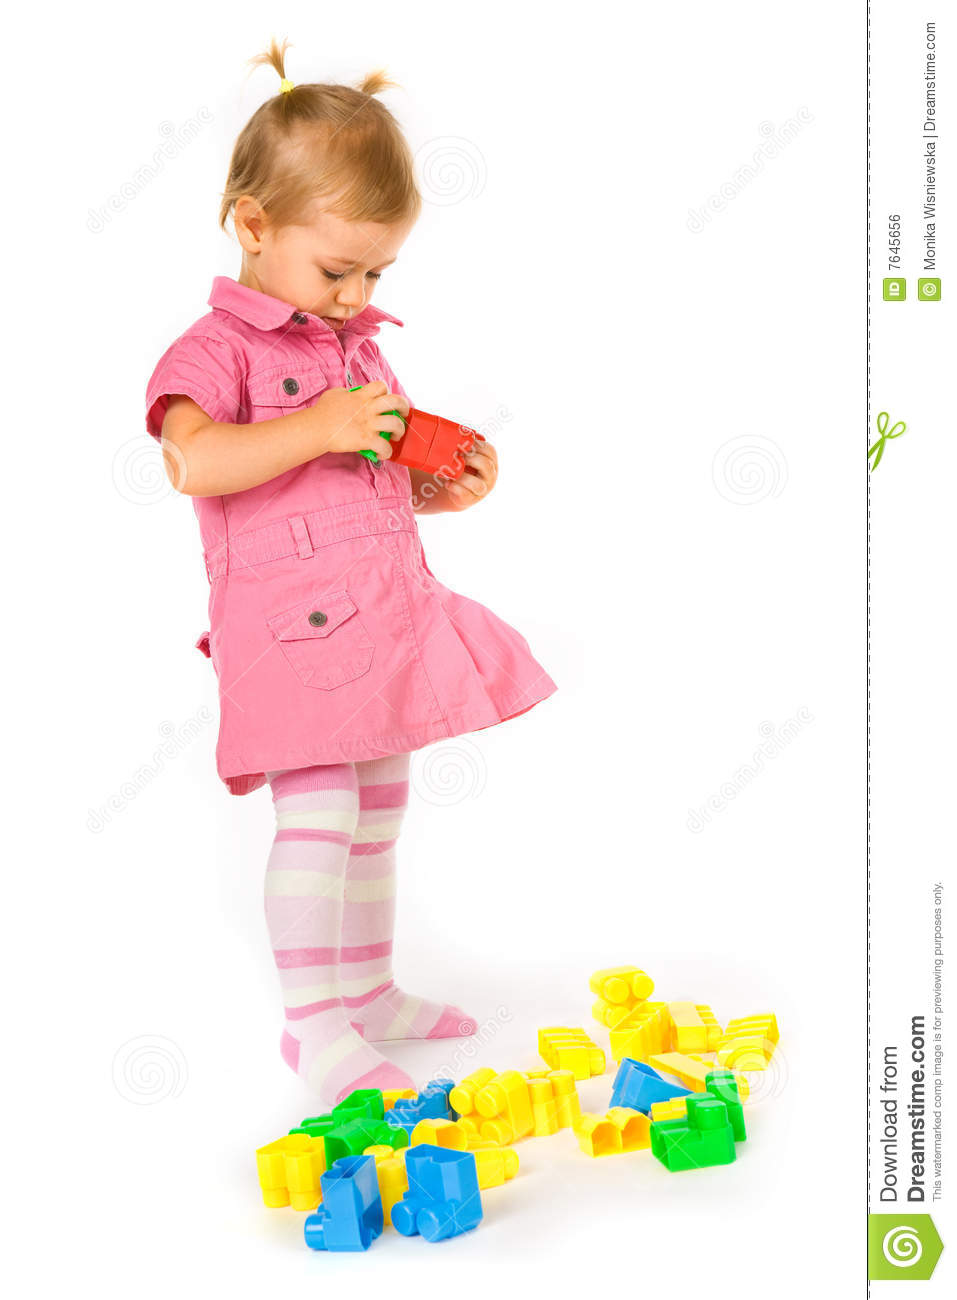 Baby Girl With Blocks Royalty Free Stock Image - Image ...